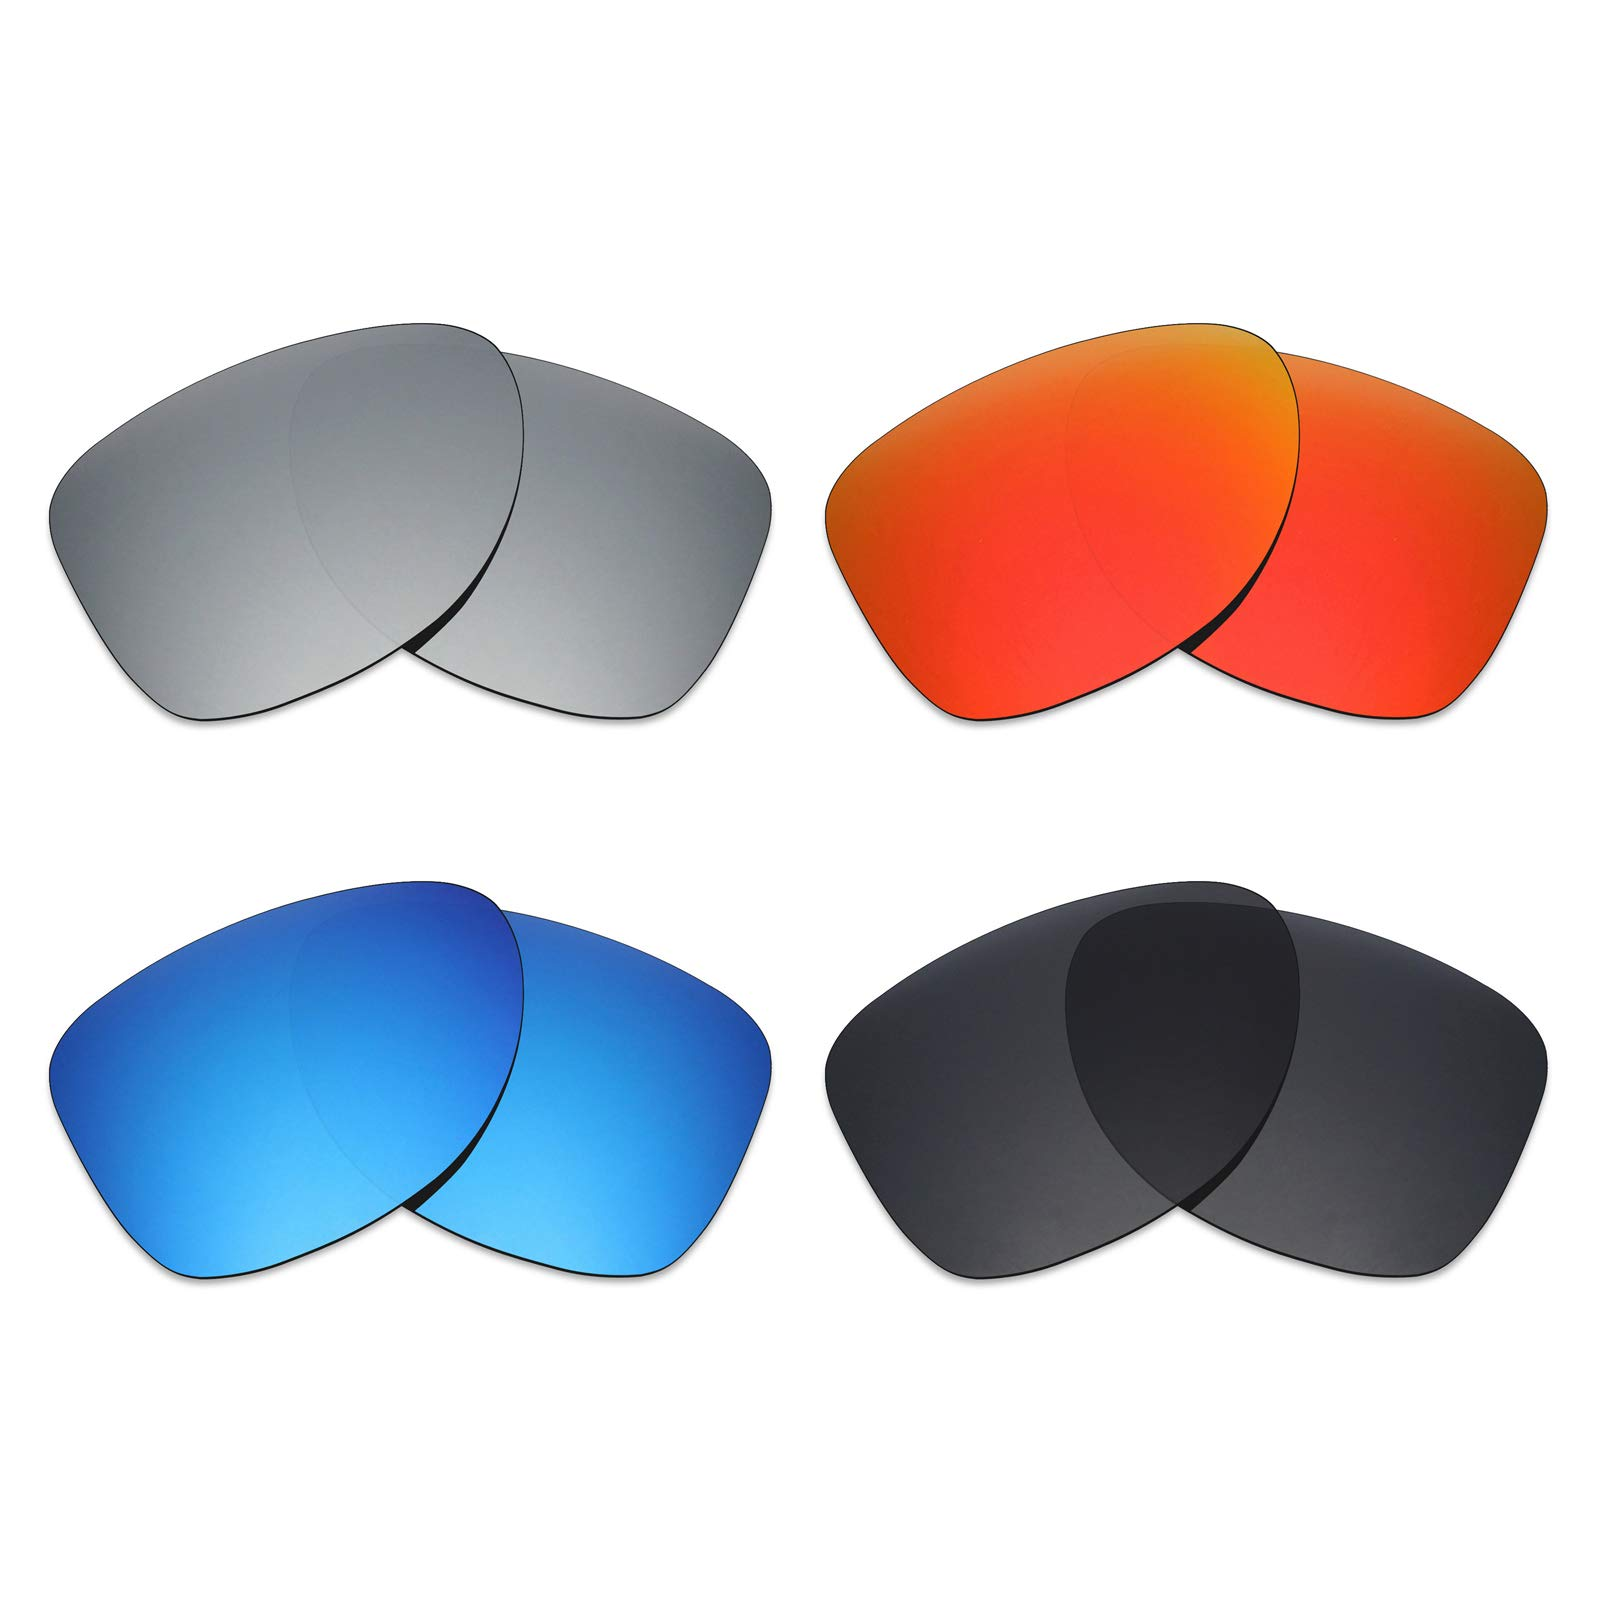 c5833e0857 Mryok 4 Pair Polarized Replacement Lenses for Oakley Dispatch 2 Sunglass -  Stealth Black Fire Red Ice Blue Silver Titanium